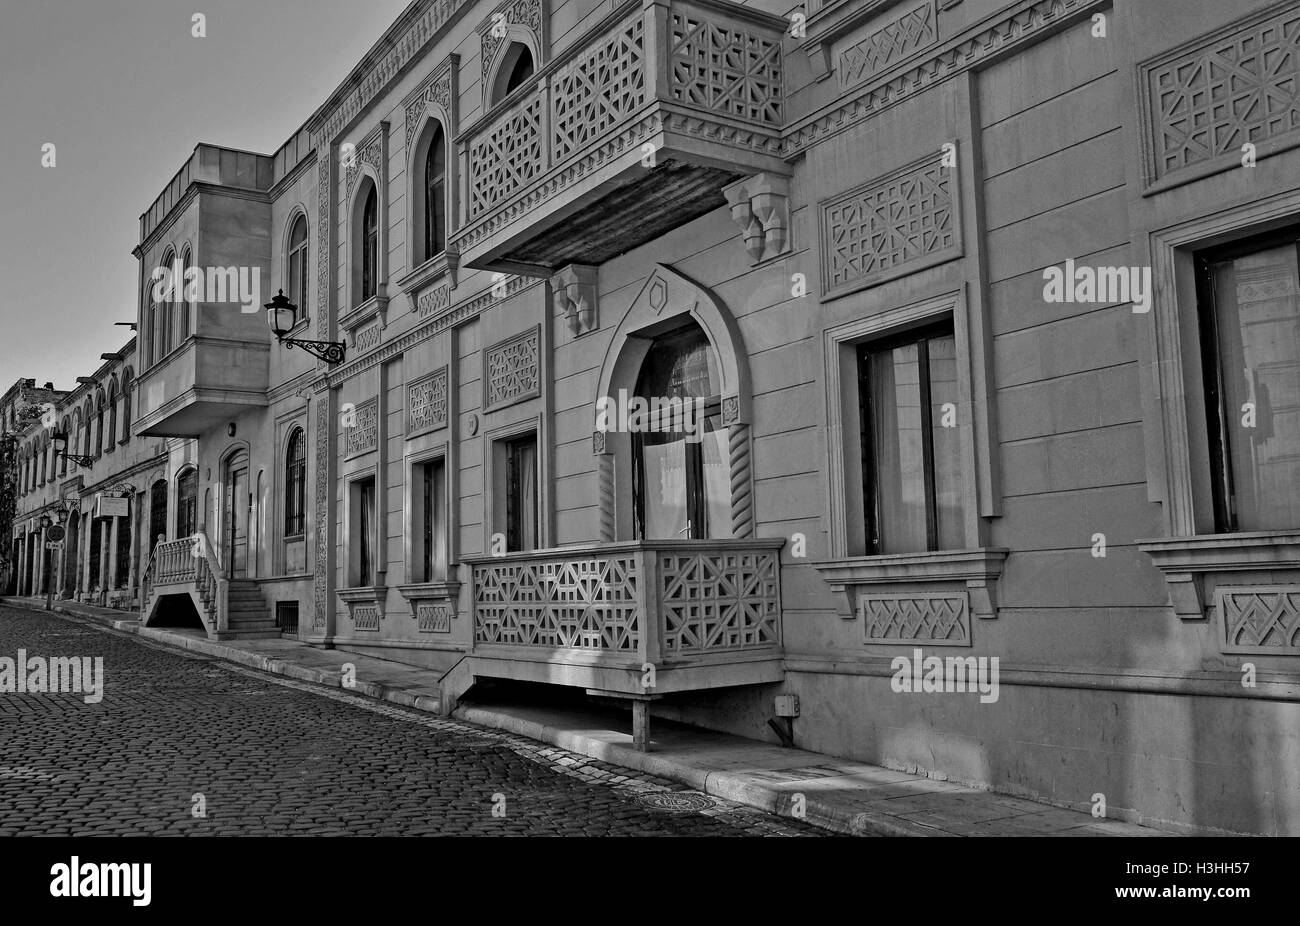 Monochrome view of a street of Baku old town - Stock Image